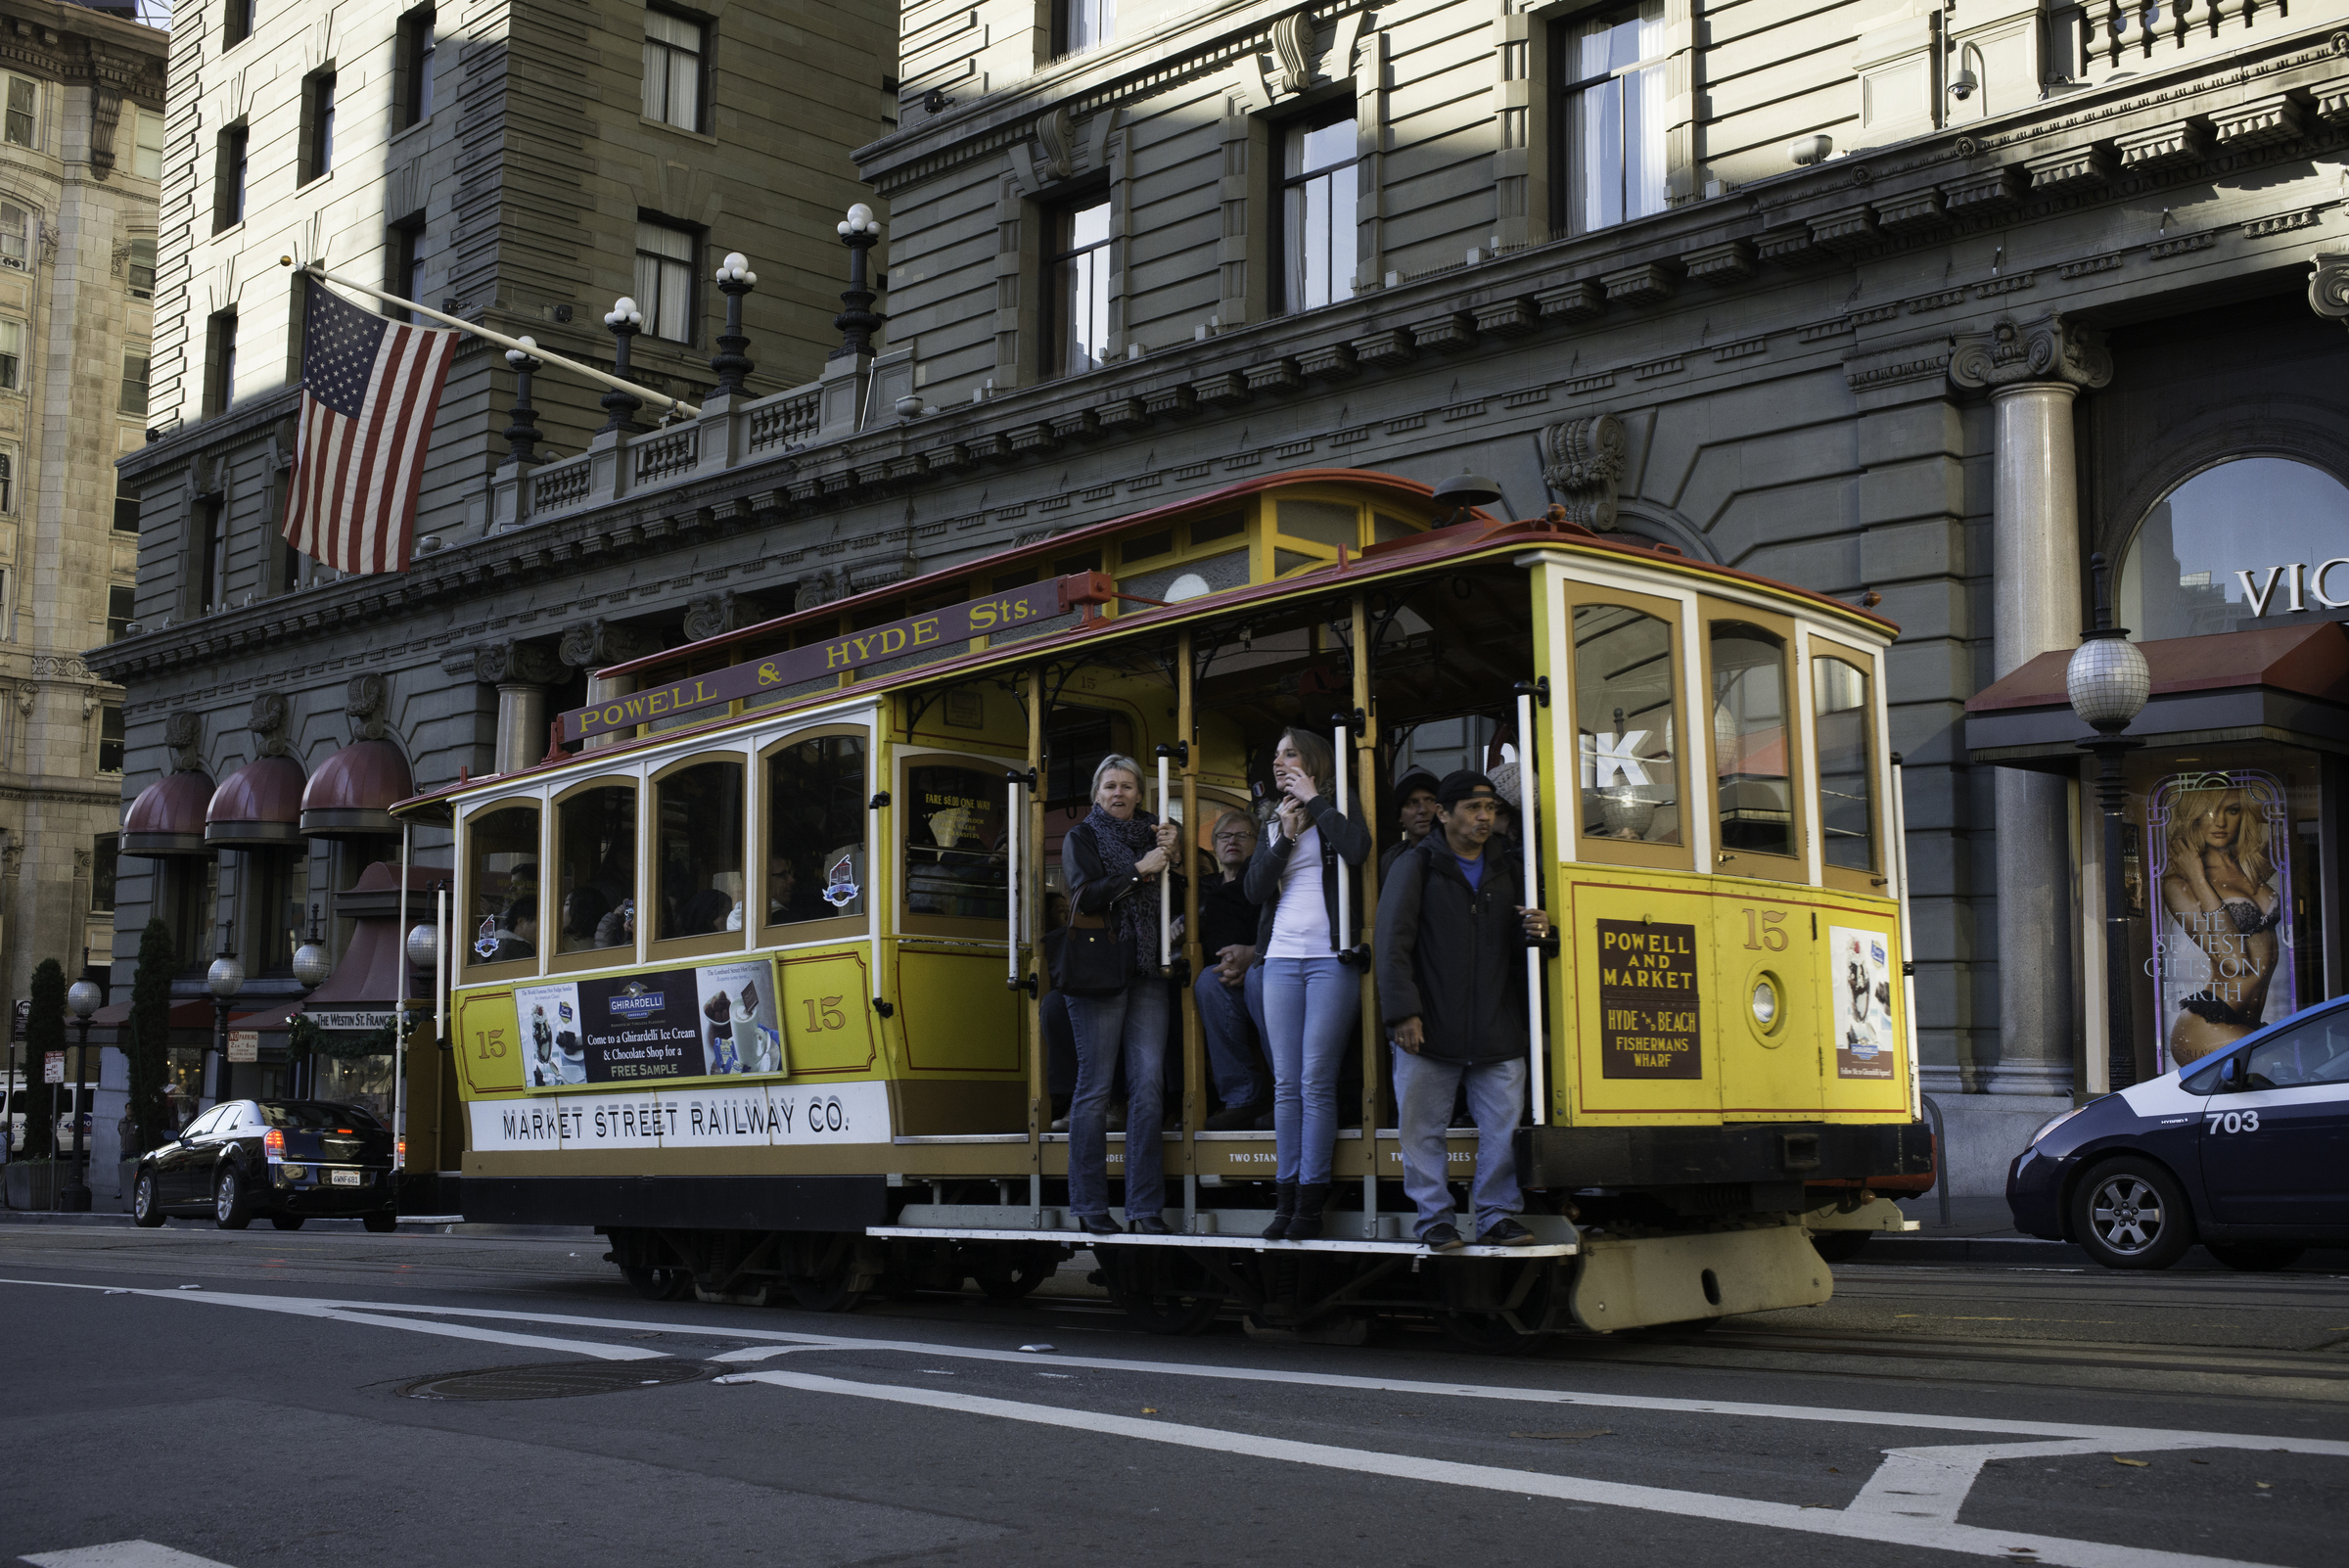 The yellow cable car 15 rumbles north past the Westin St. Francis Hotel on Powell Street.